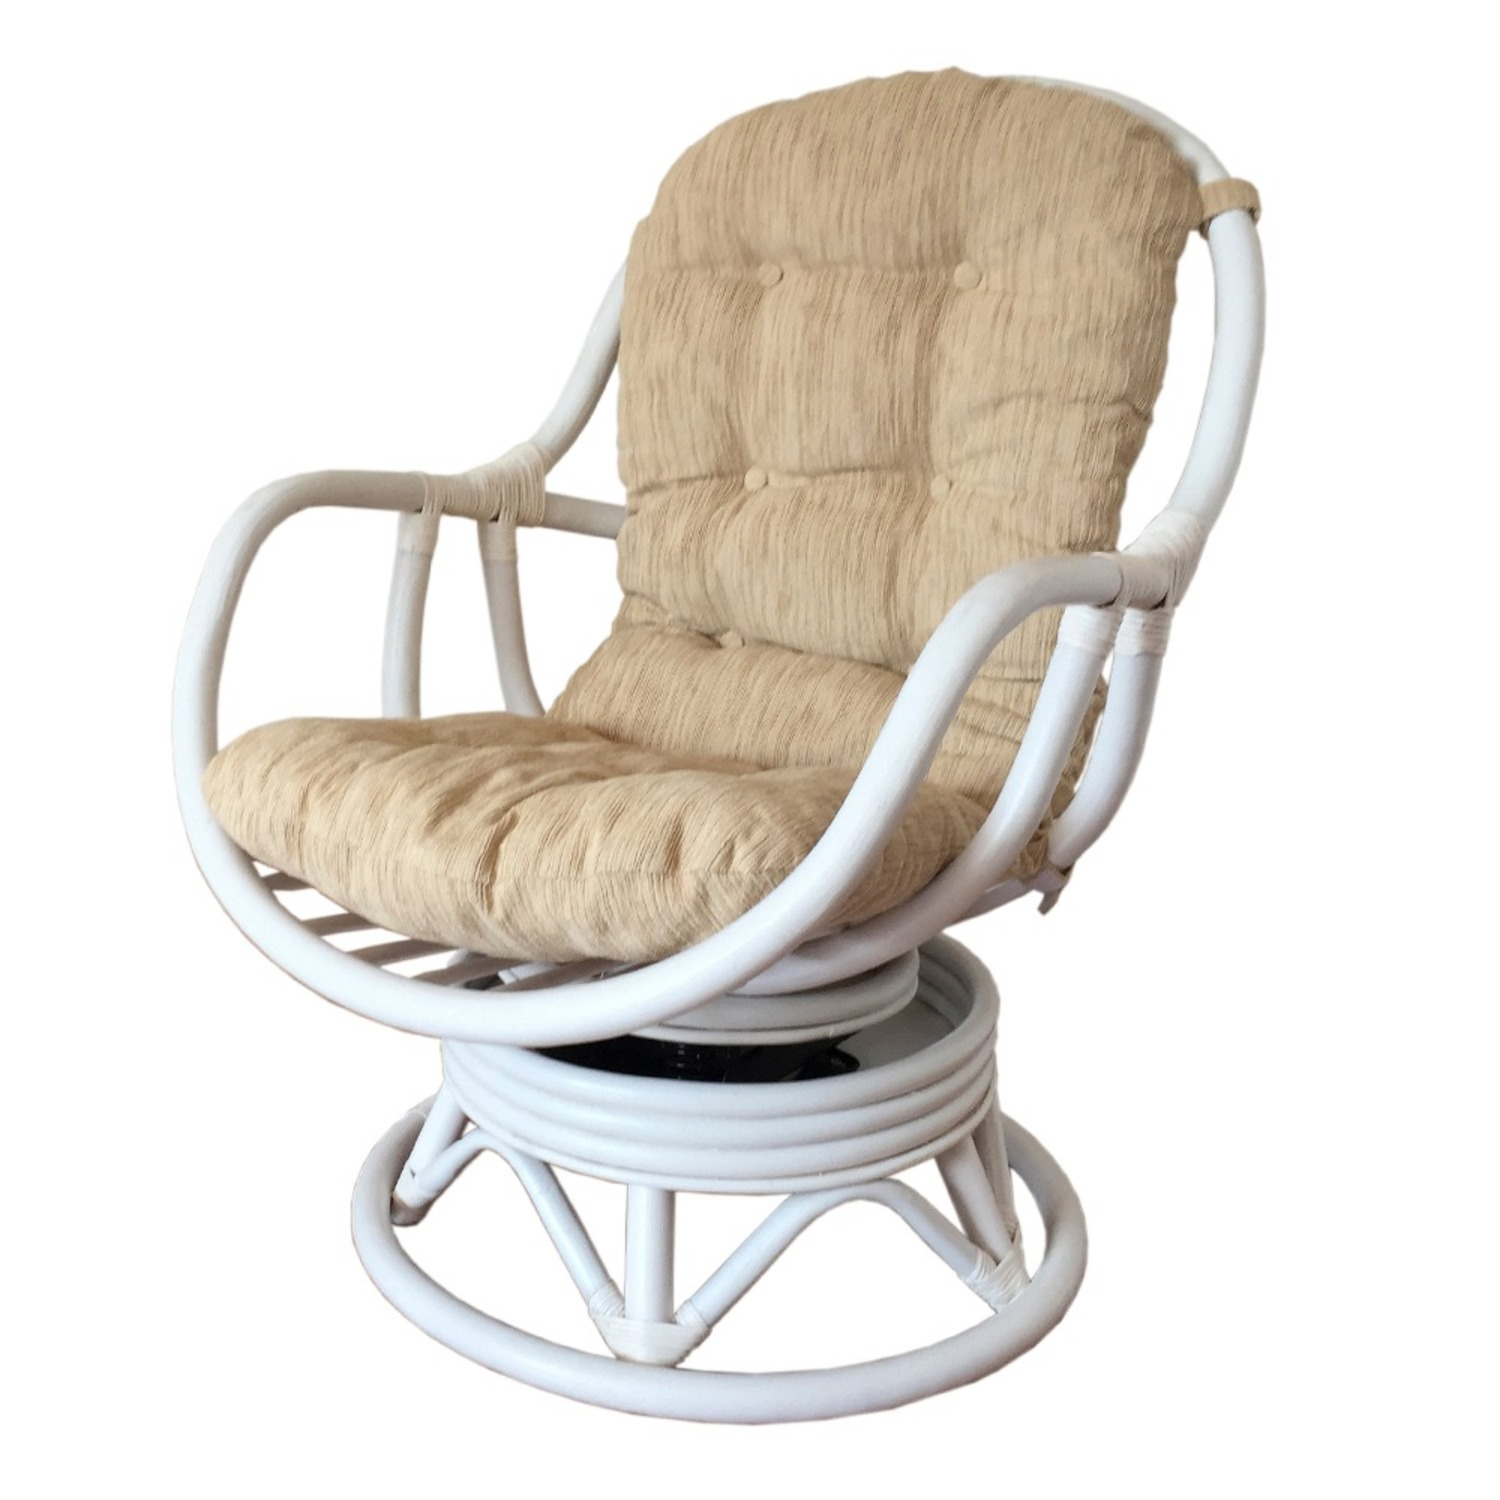 Erick White Solid Rattan Swivel Rocking Chair - image-0